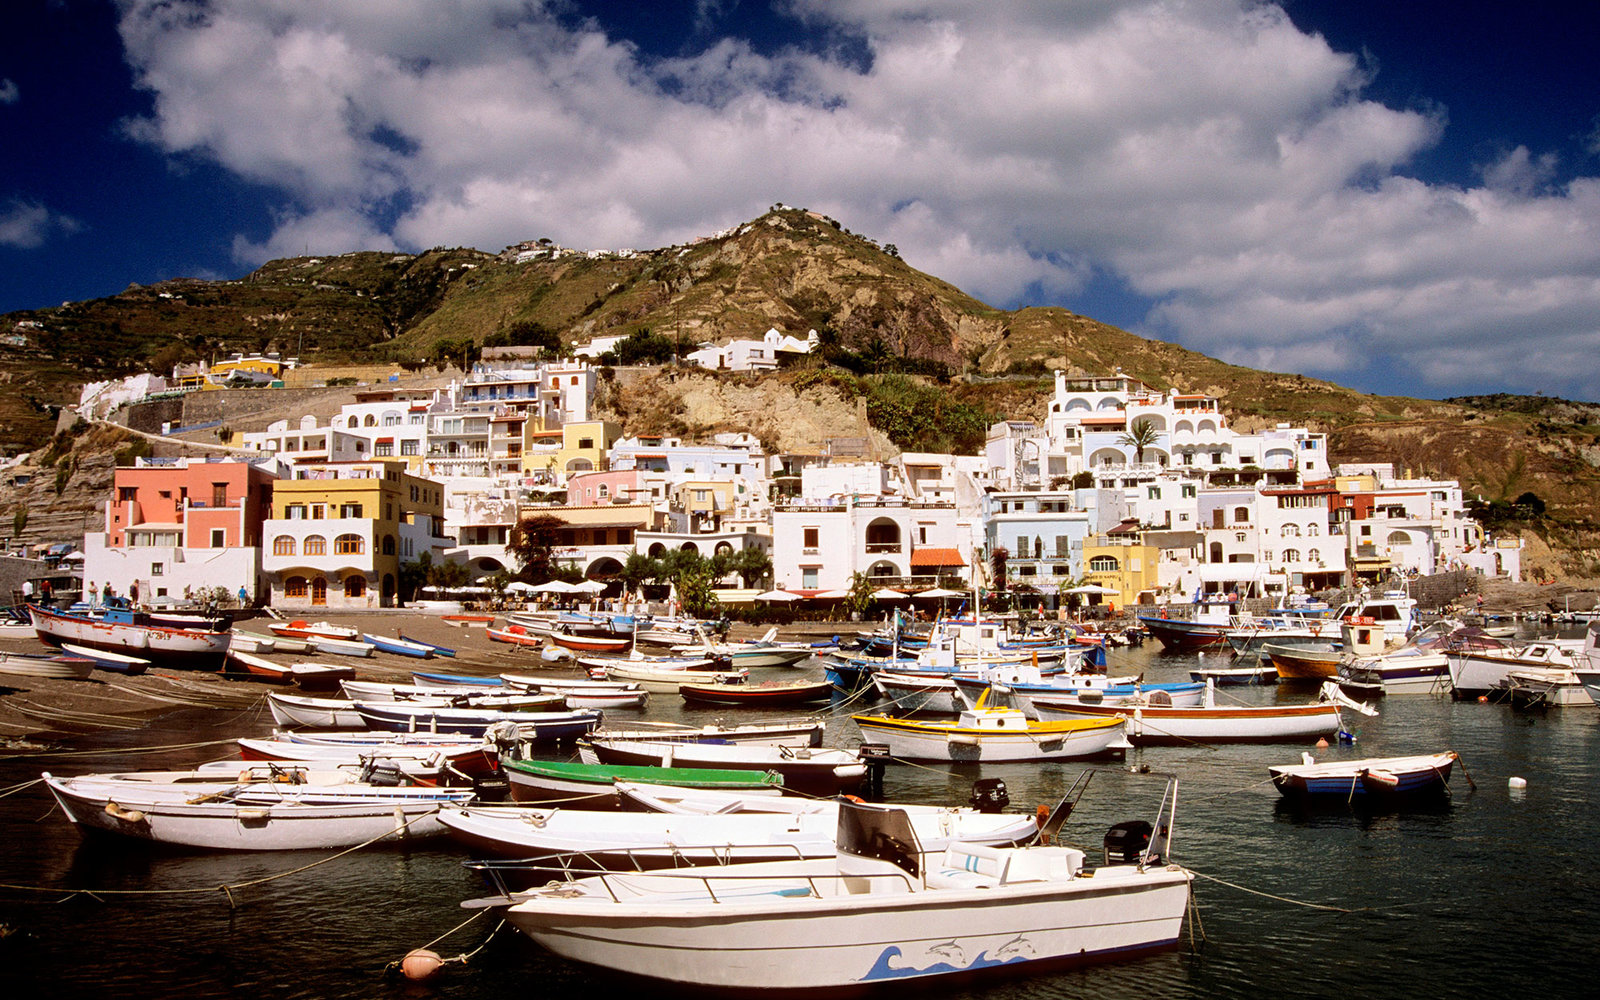 Italy, Campania, Ischia, Sant'angelo (Photo by Marka/UIG via Getty Images)